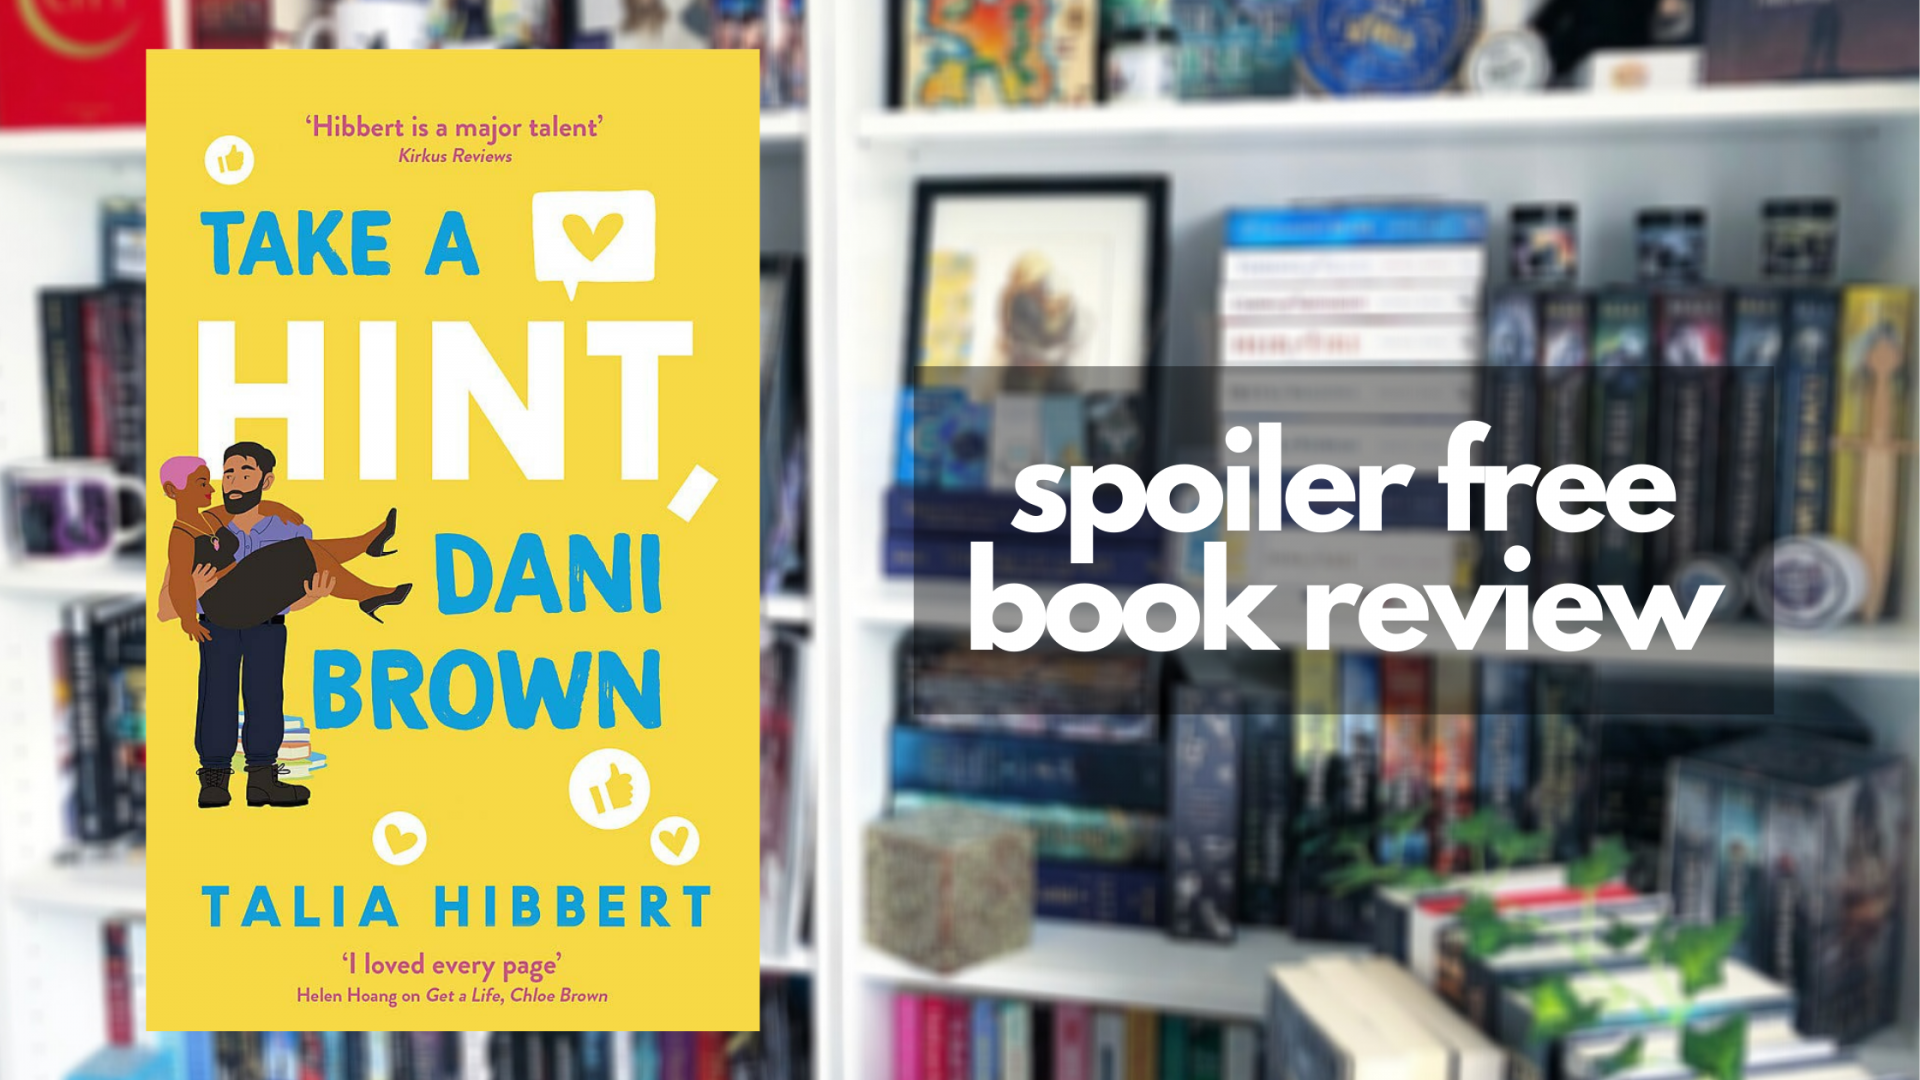 Review of Take a Hint Dani Brown by Talia Hibbert